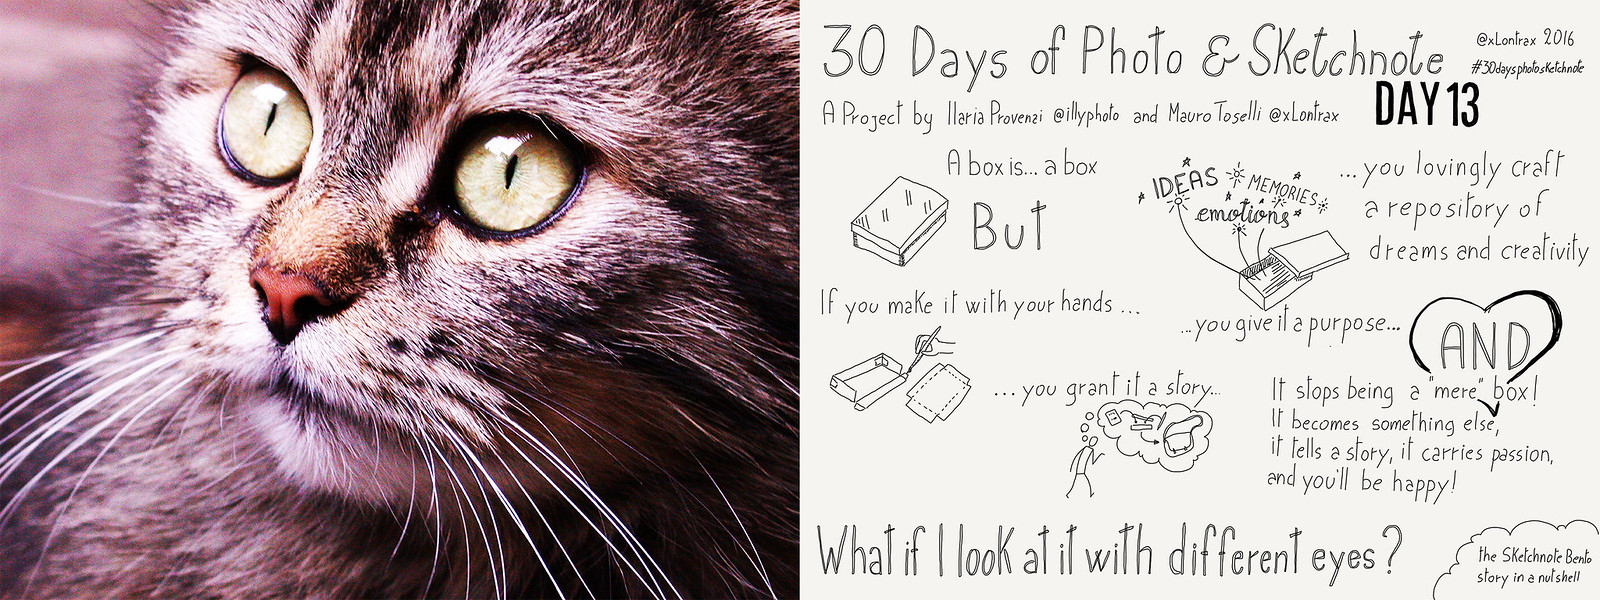 Day 13. E se lo guardassi con occhi diversi? - What if I look at it with different eyes?